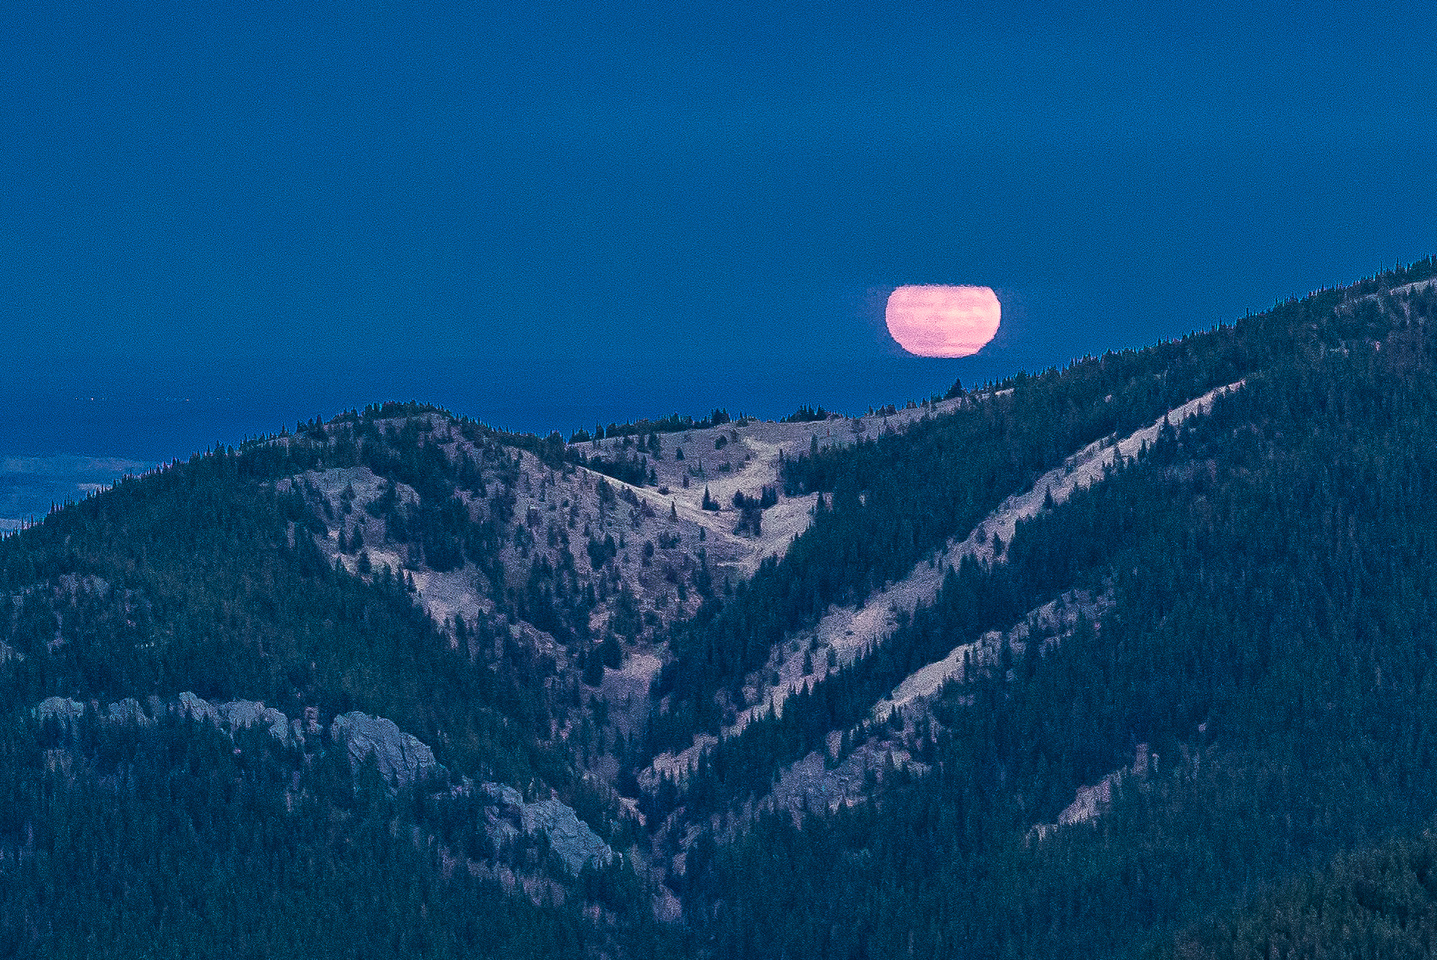 On the drive home, just as we dropped down from Windy Gap, the super moon rose over the foothills.